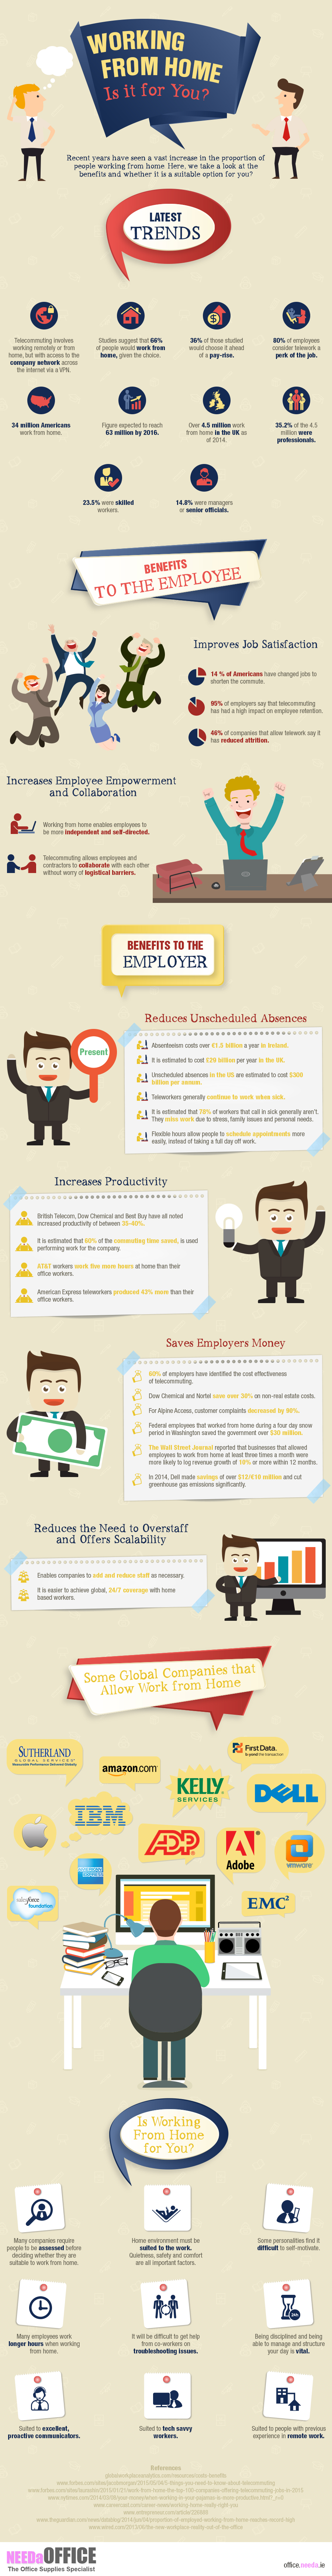 Working-From-Home-Infographic (2)